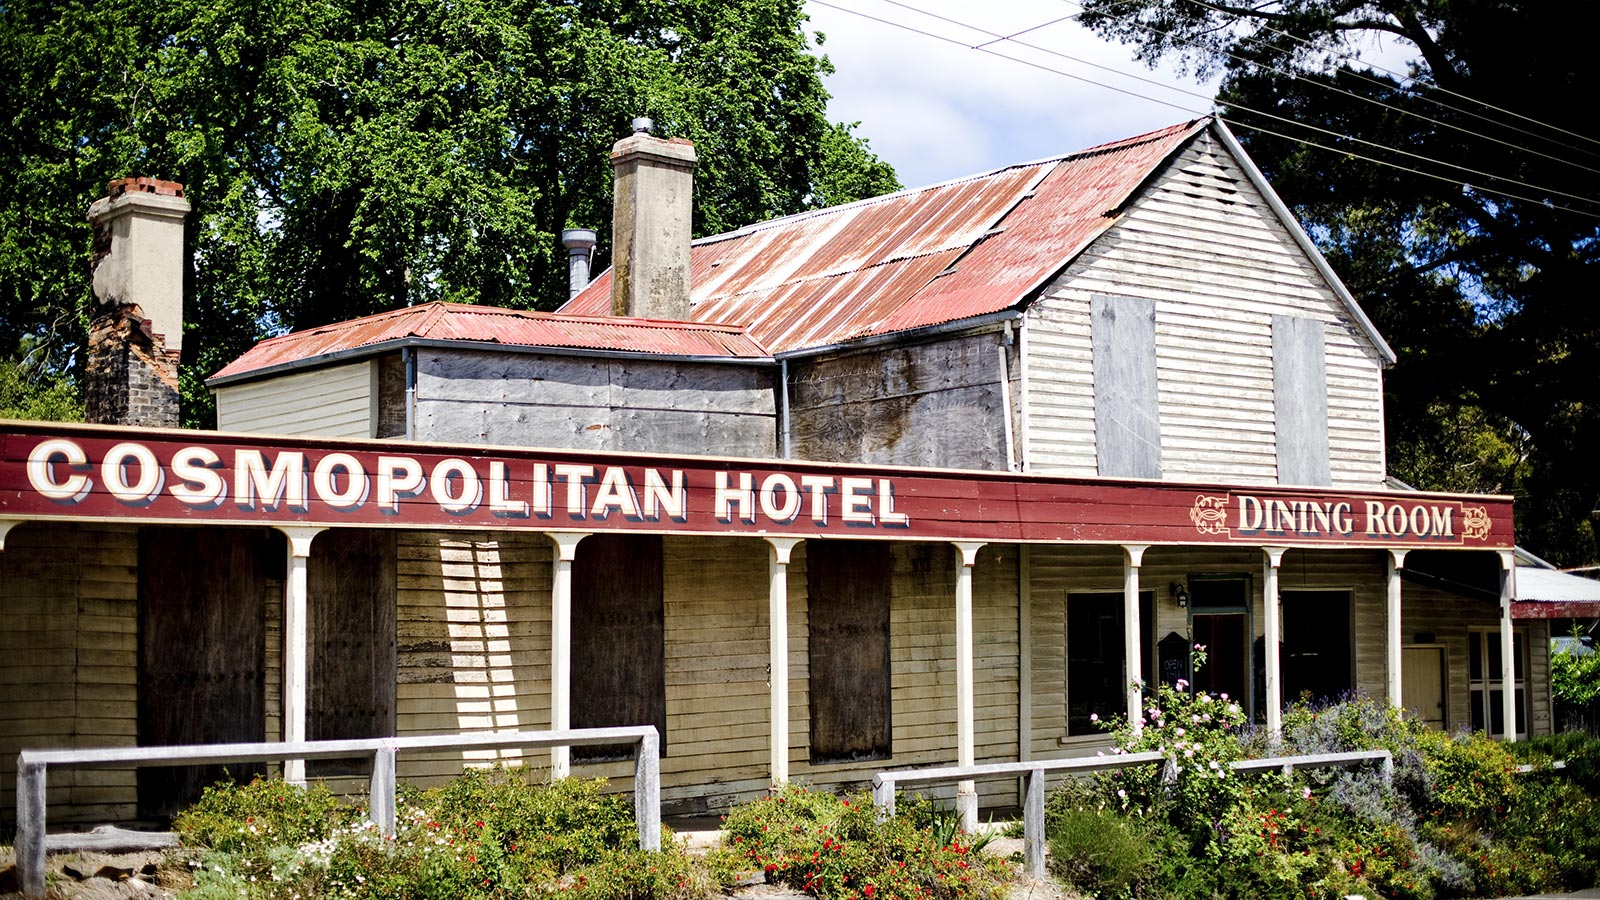 Cosmopolitan Hotel, Daylesford and the Macedon Ranges, Victoria, Australia